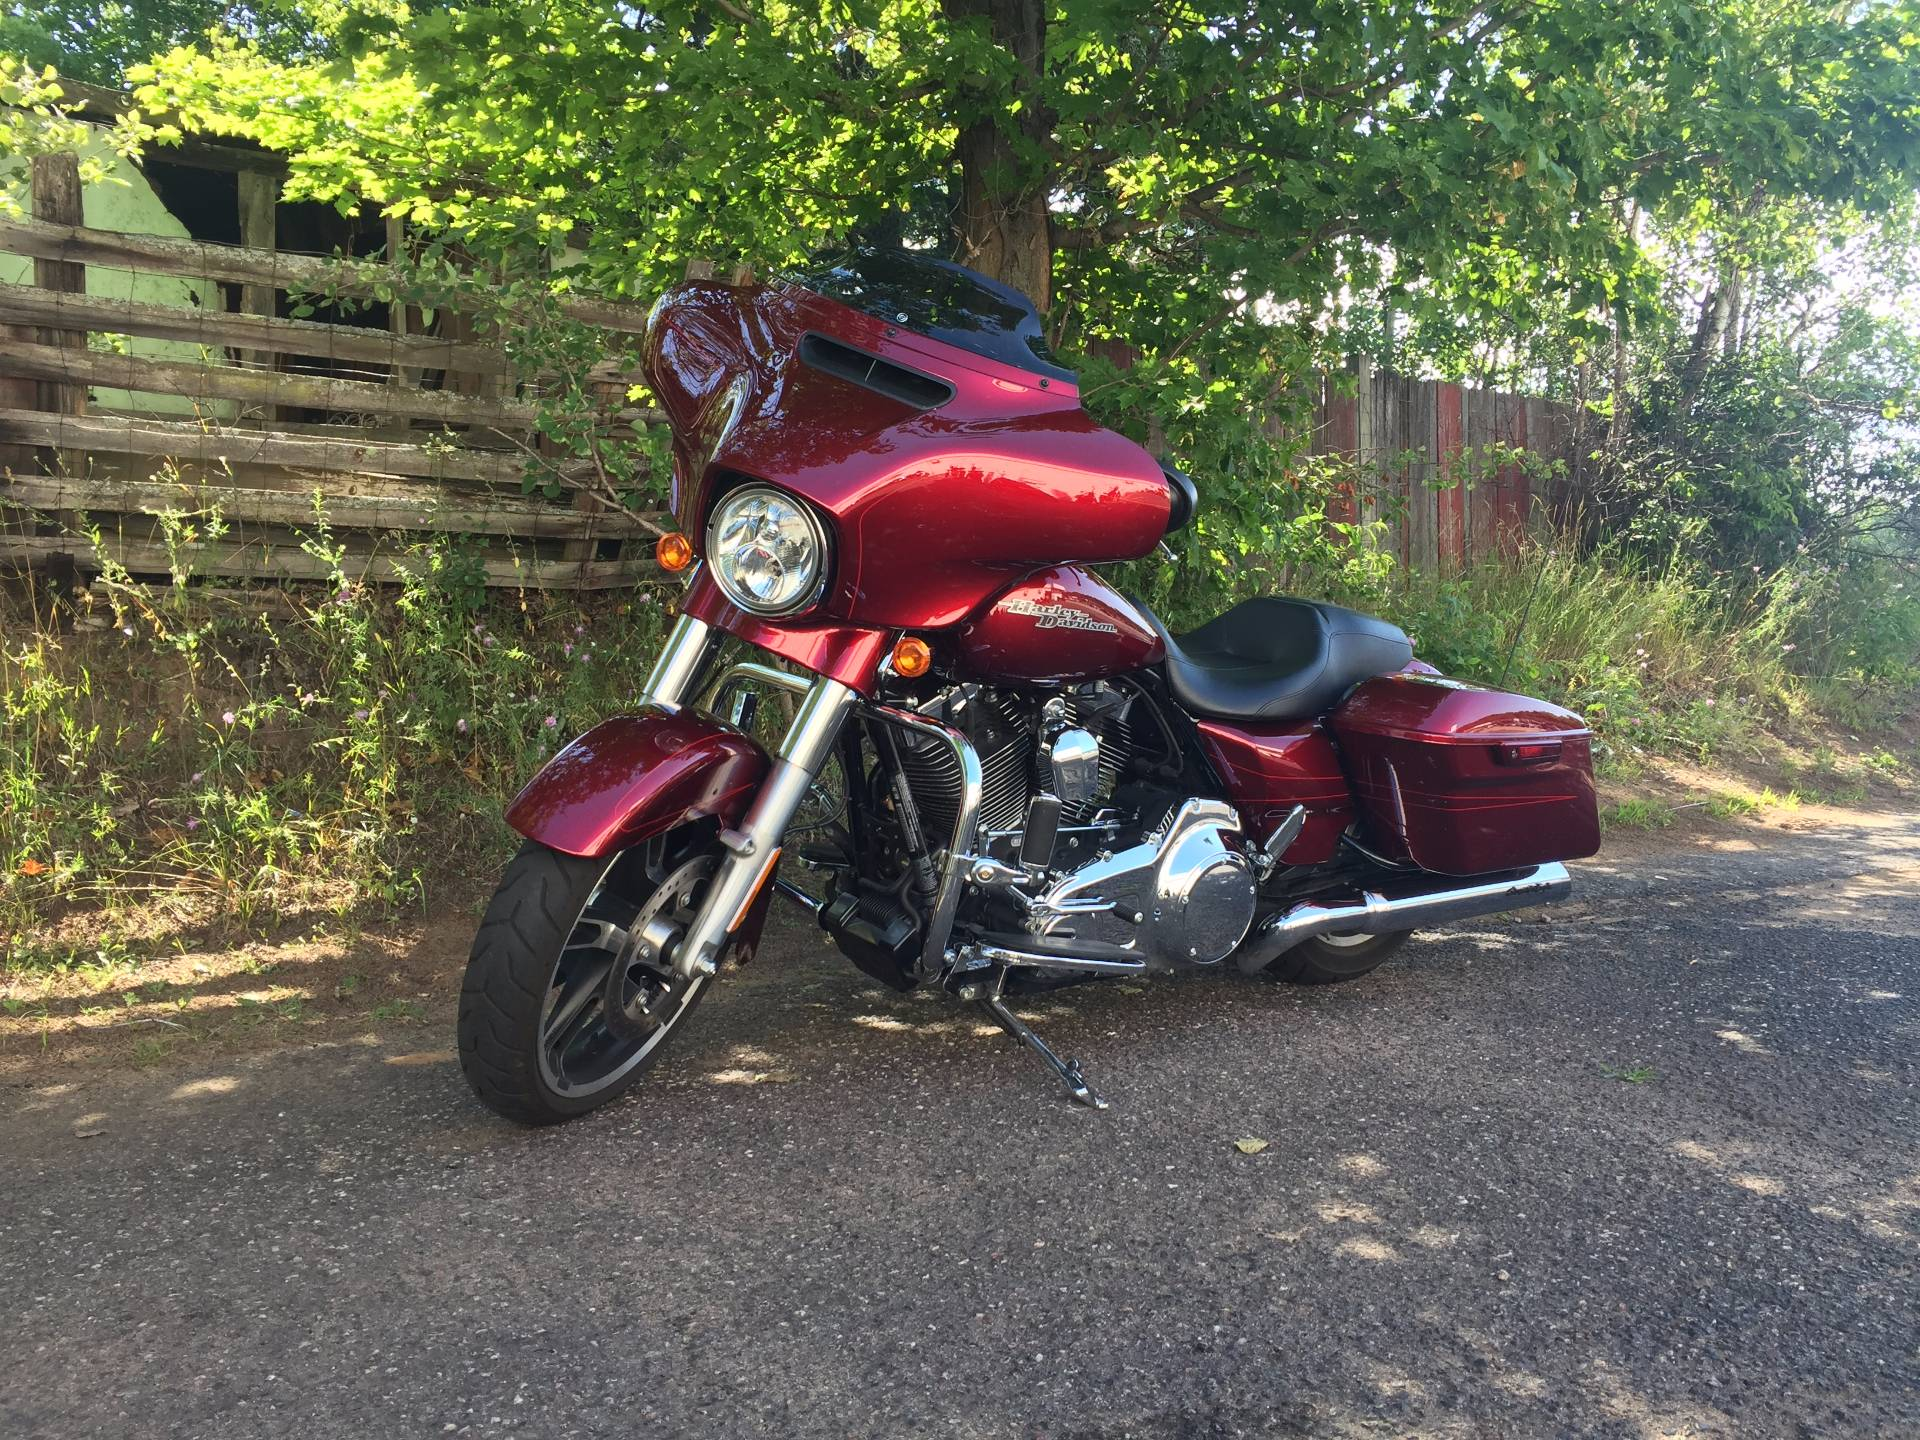 2016 Harley-Davidson STREET GLIDE SPECIAL in Marquette, Michigan